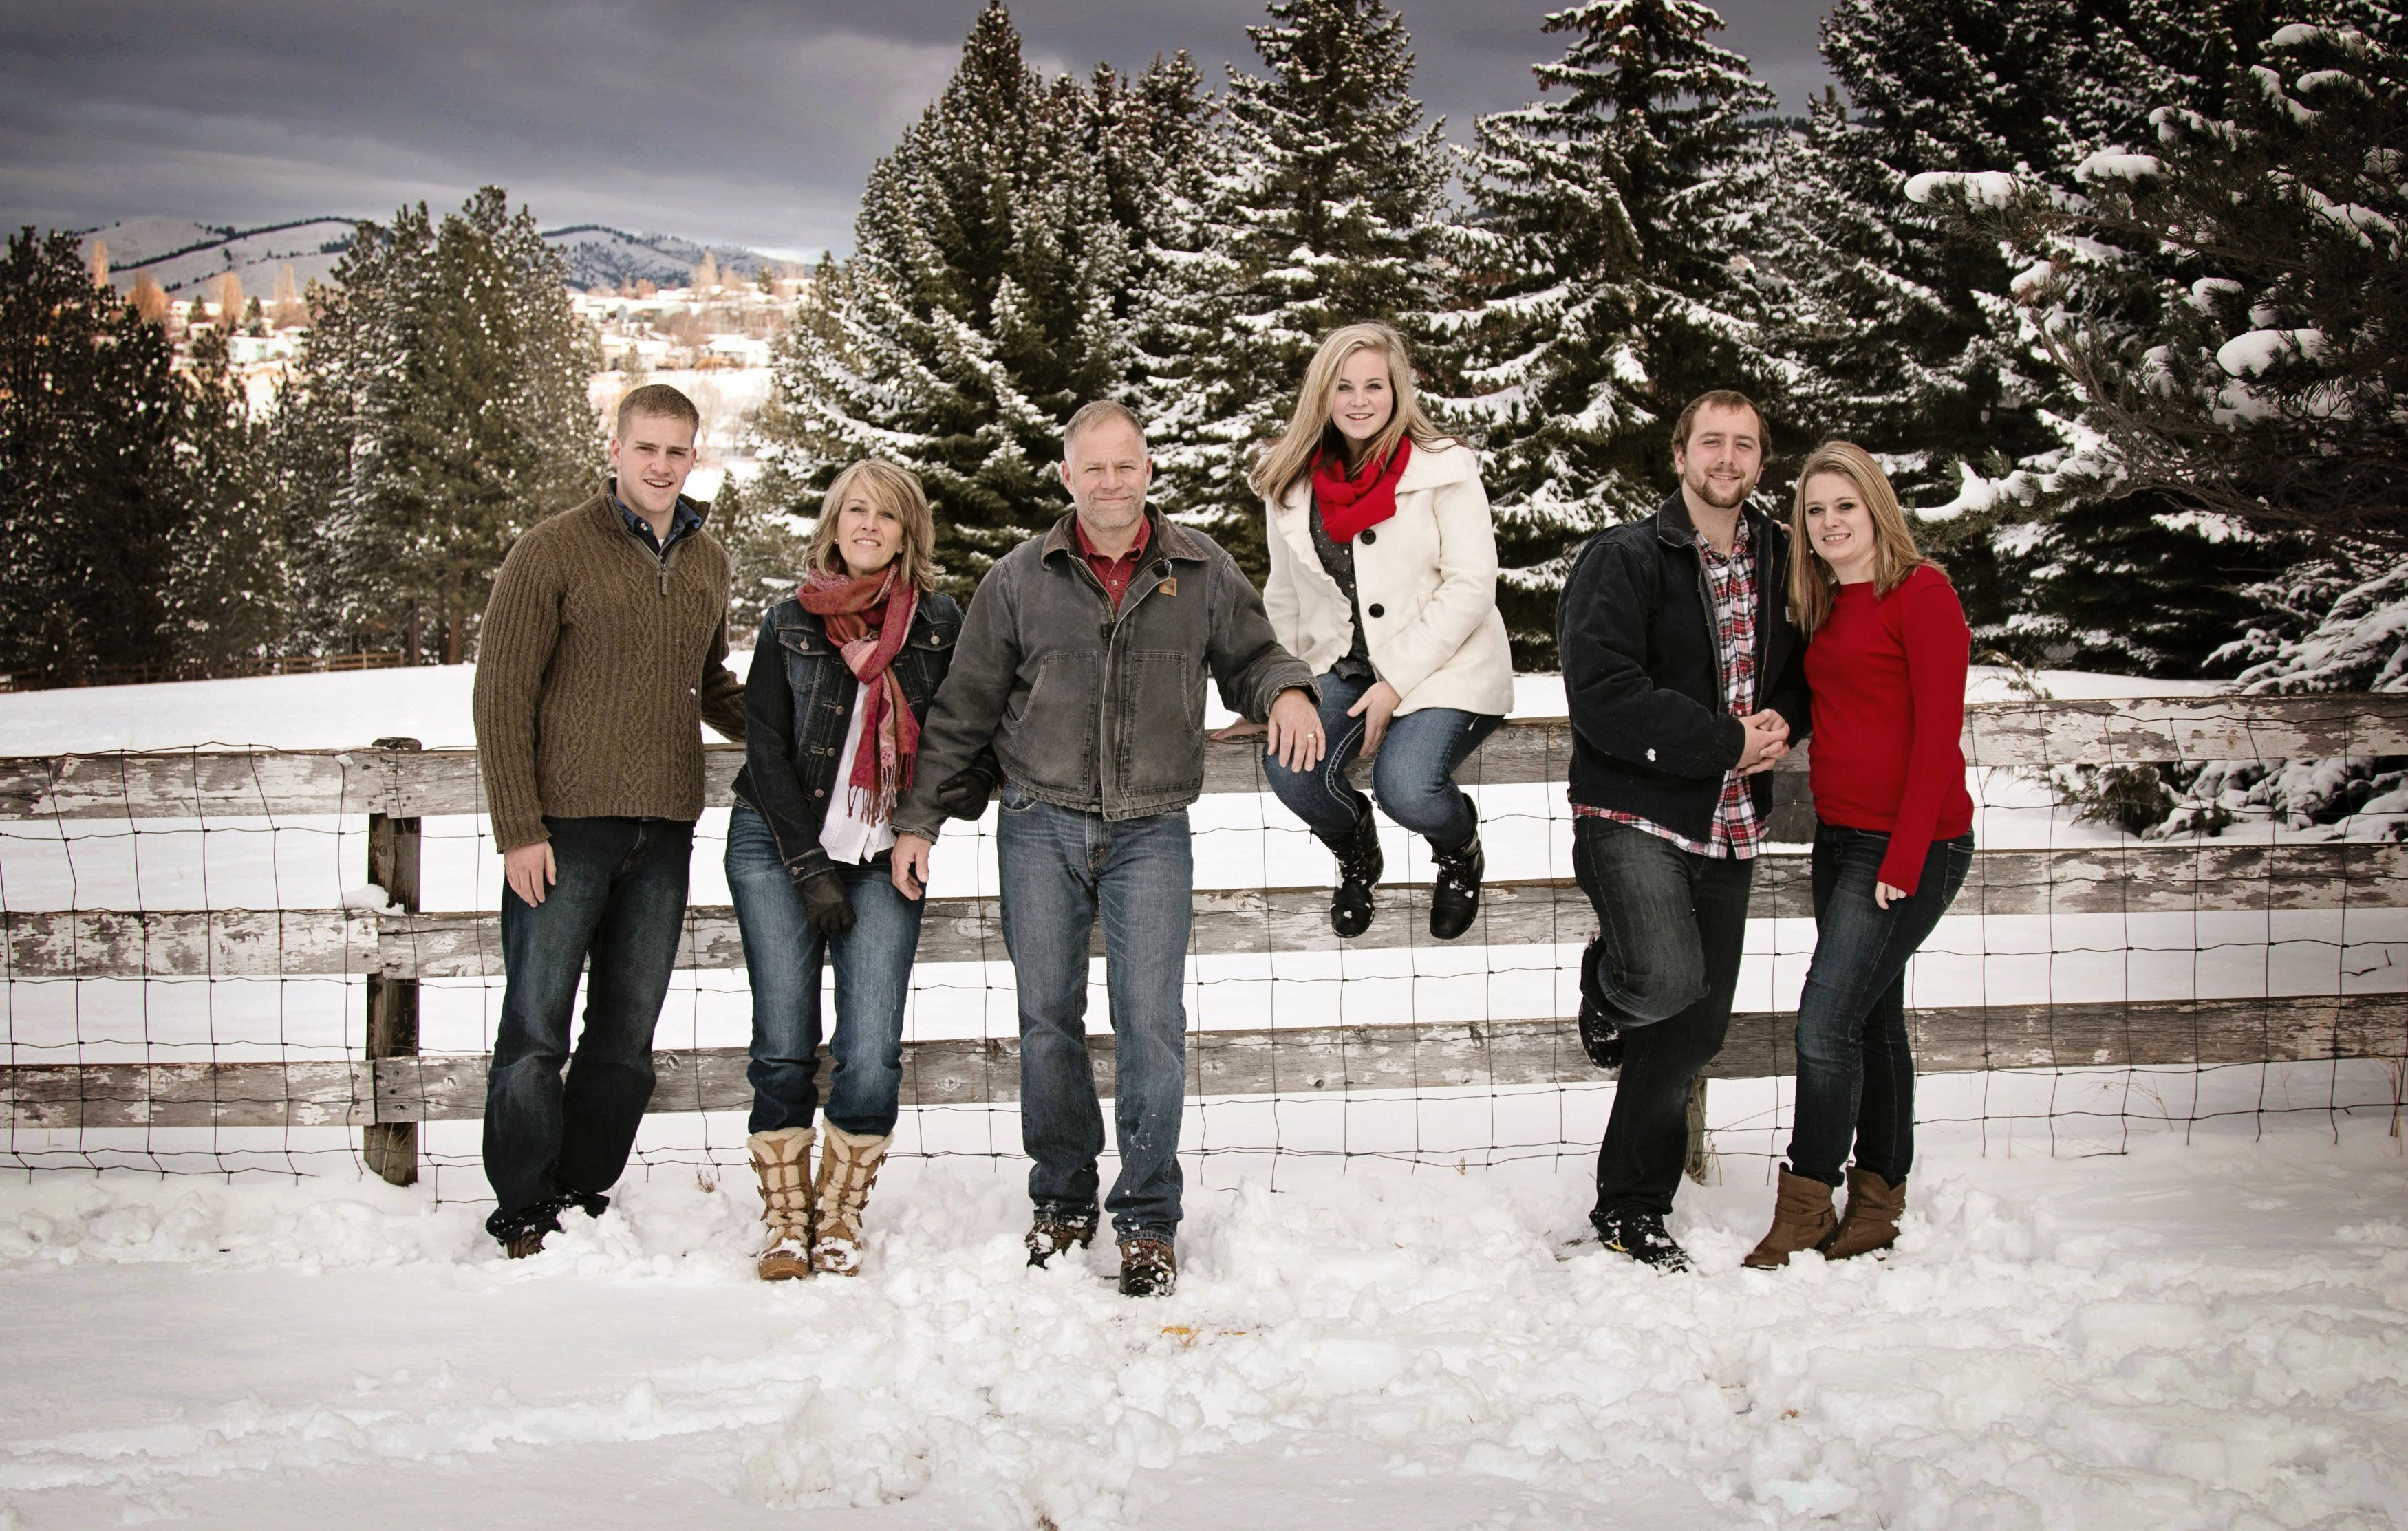 Image result for winter family photos #winterfamilyphotography Image result for winter family photos #winterfamilyphotography Image result for winter family photos #winterfamilyphotography Image result for winter family photos #winterfamilyphotography Image result for winter family photos #winterfamilyphotography Image result for winter family photos #winterfamilyphotography Image result for winter family photos #winterfamilyphotography Image result for winter family photos #winterfamilyphotography